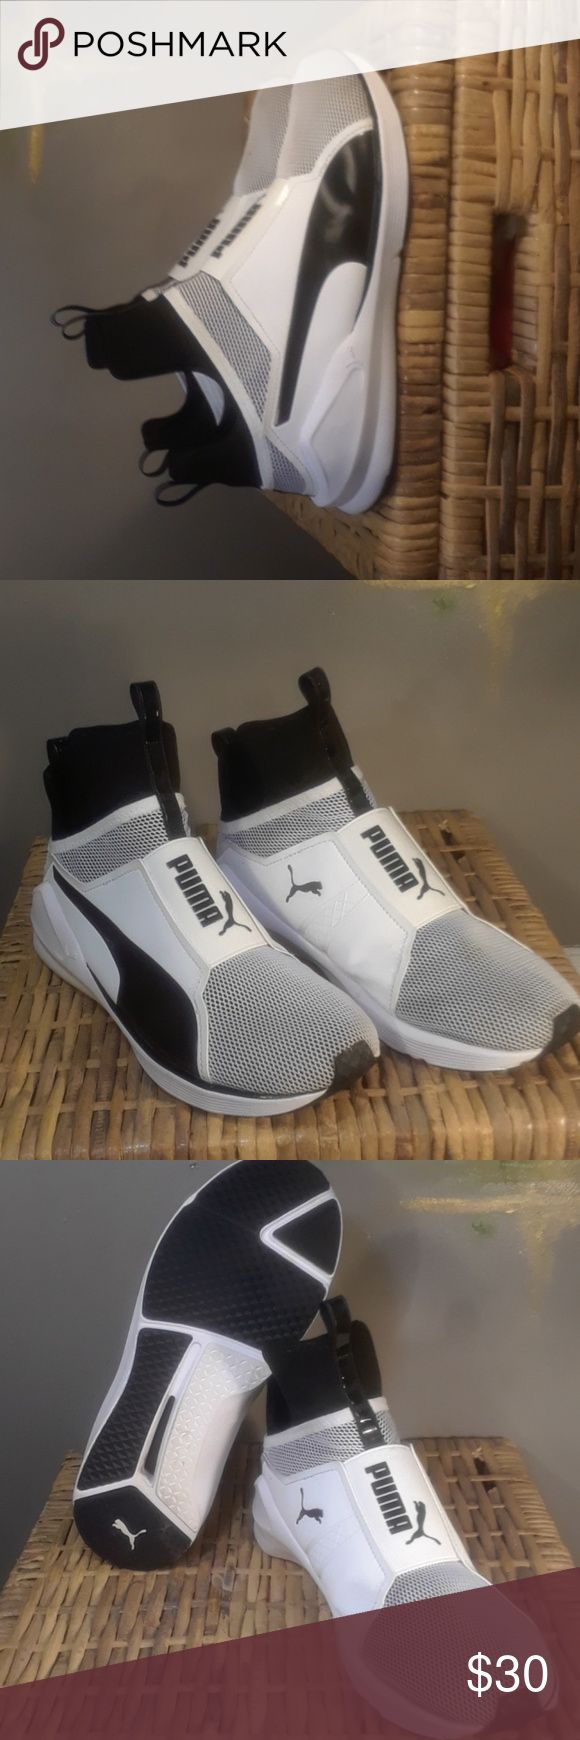 Puma men's size 6 In excellent clean condition. Puma Shoes Sneakers